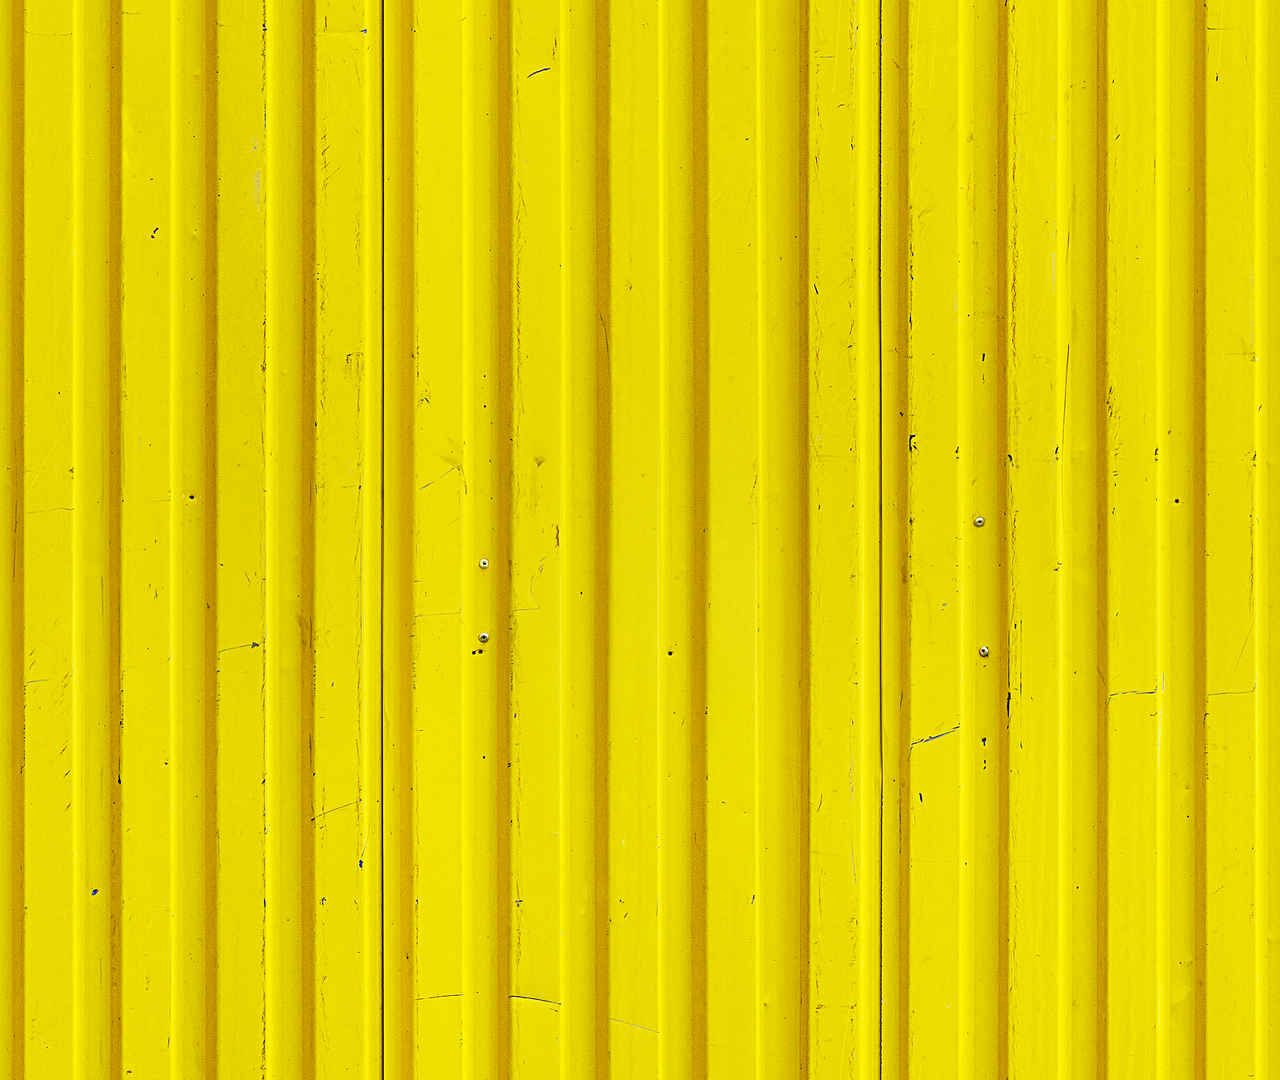 Technical Yellow Metal Fence Seamless Texture